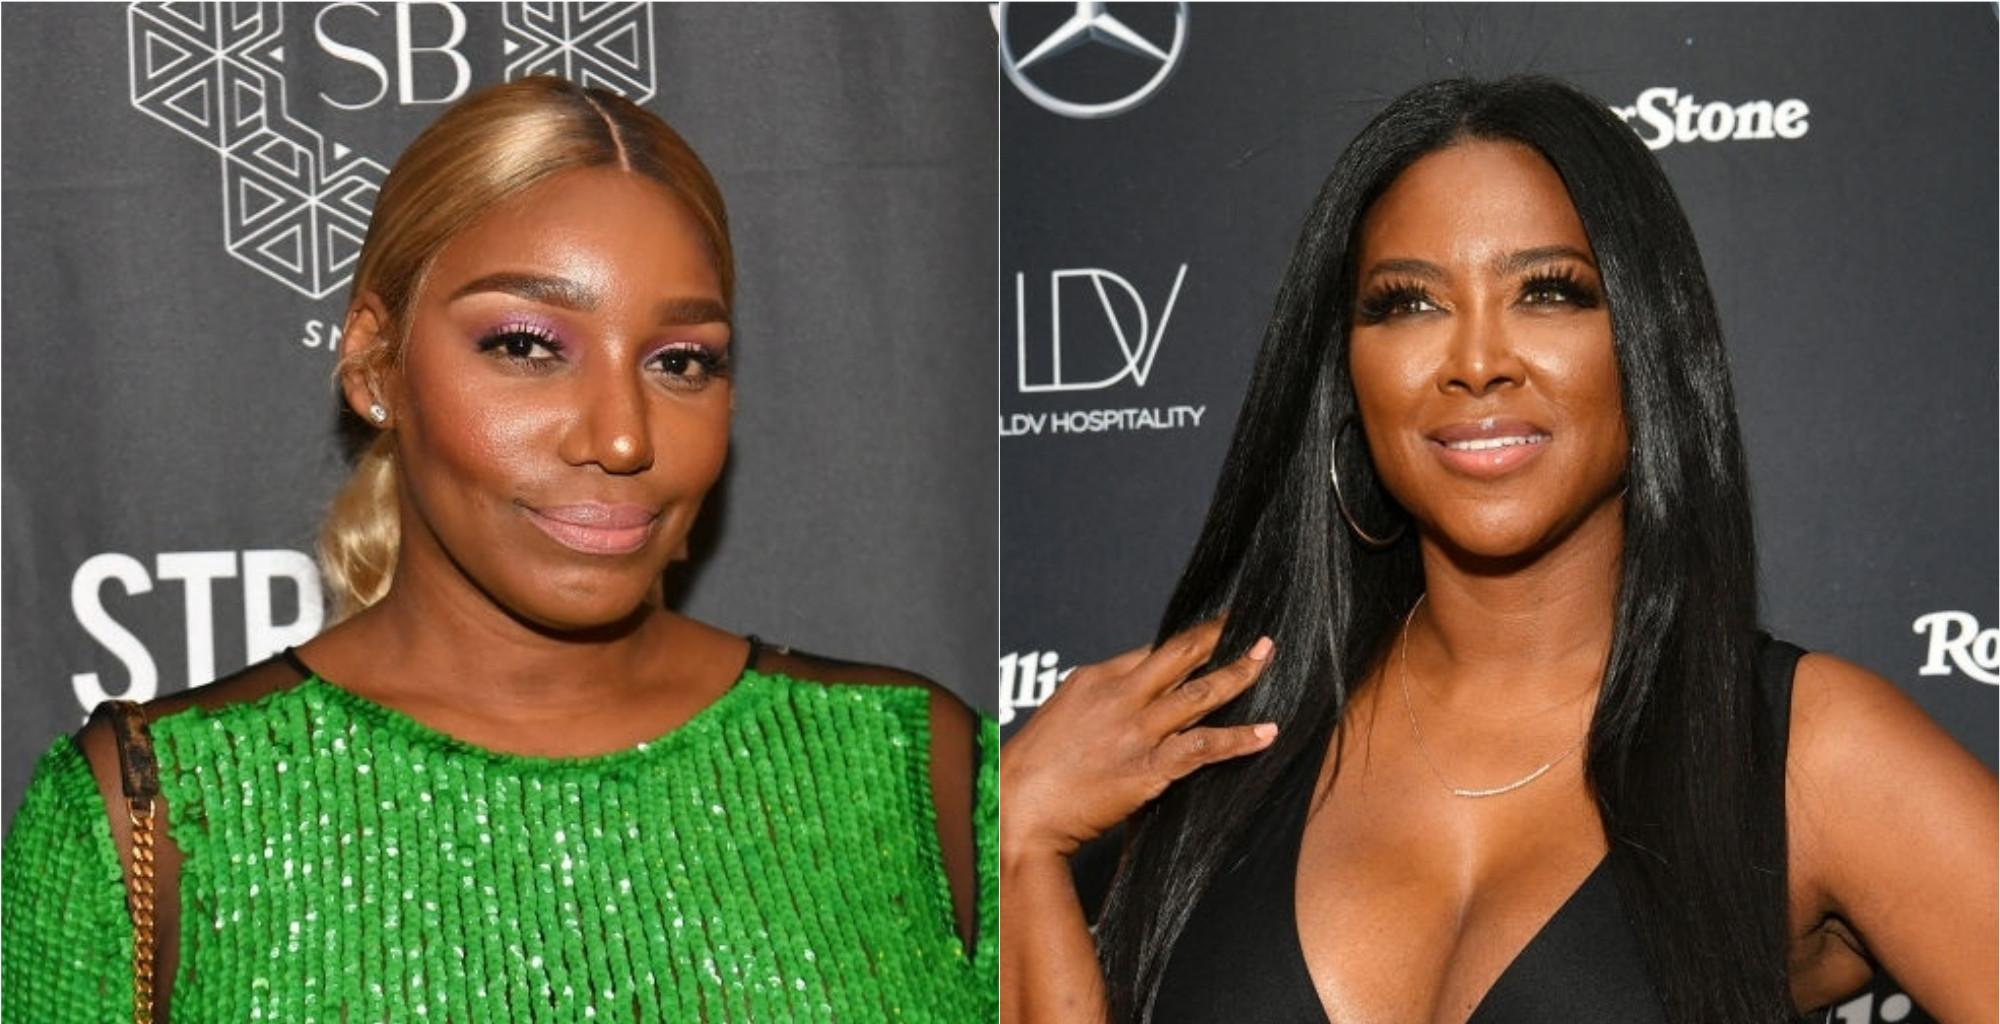 Kenya Moore Says Nene Leakes Has 'Bullied' Everyone On The Show: 'I Wish She Would Get Herself Together'